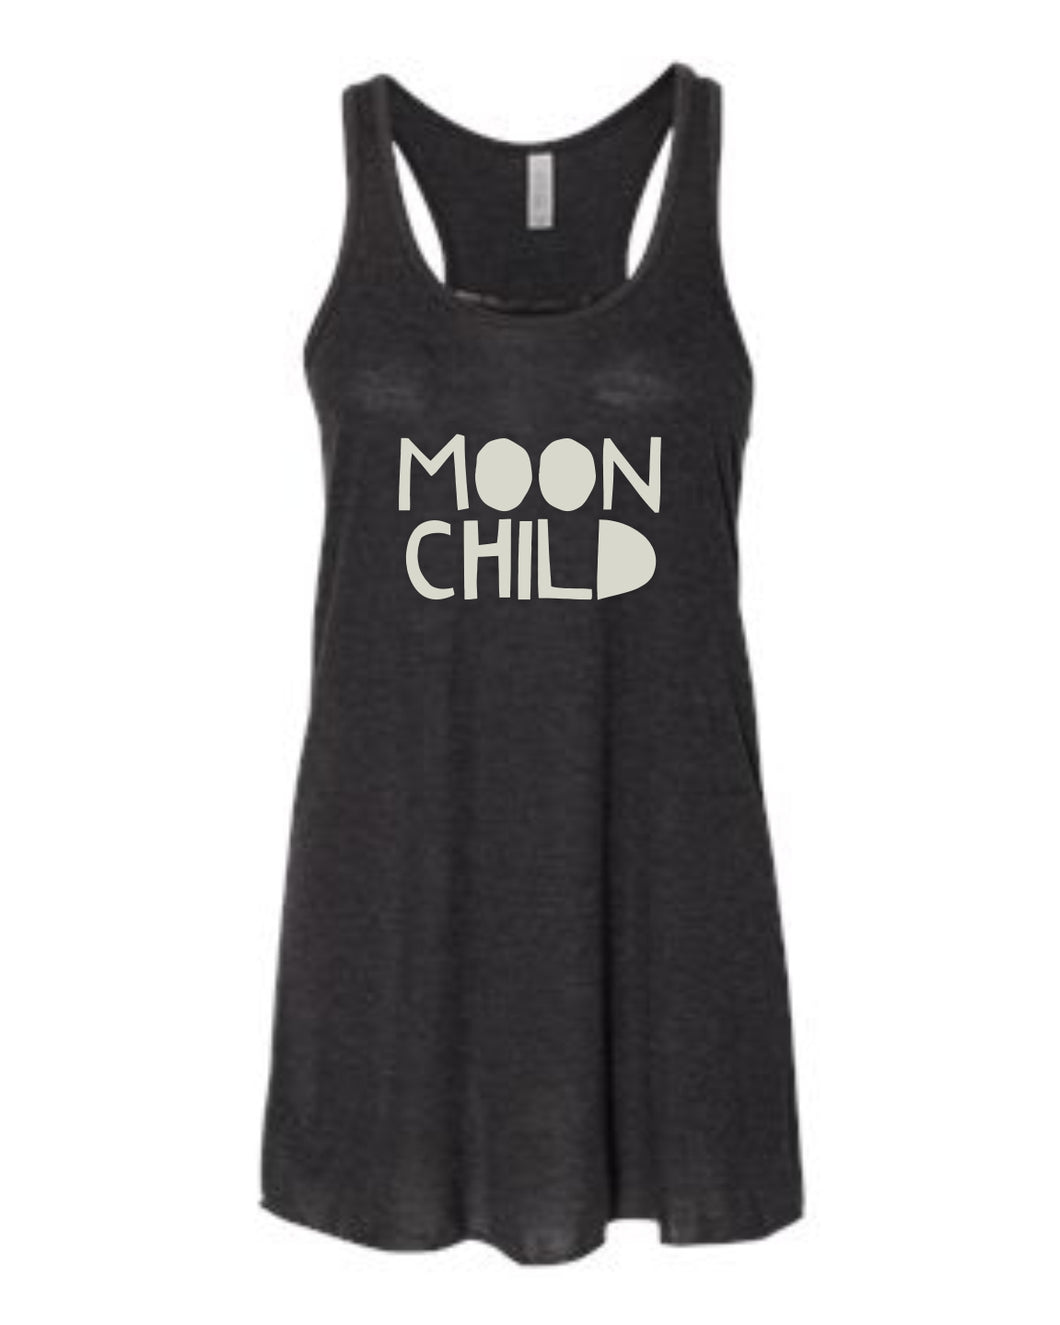 MOON CHILD, Flowy Tank Champagne Foil